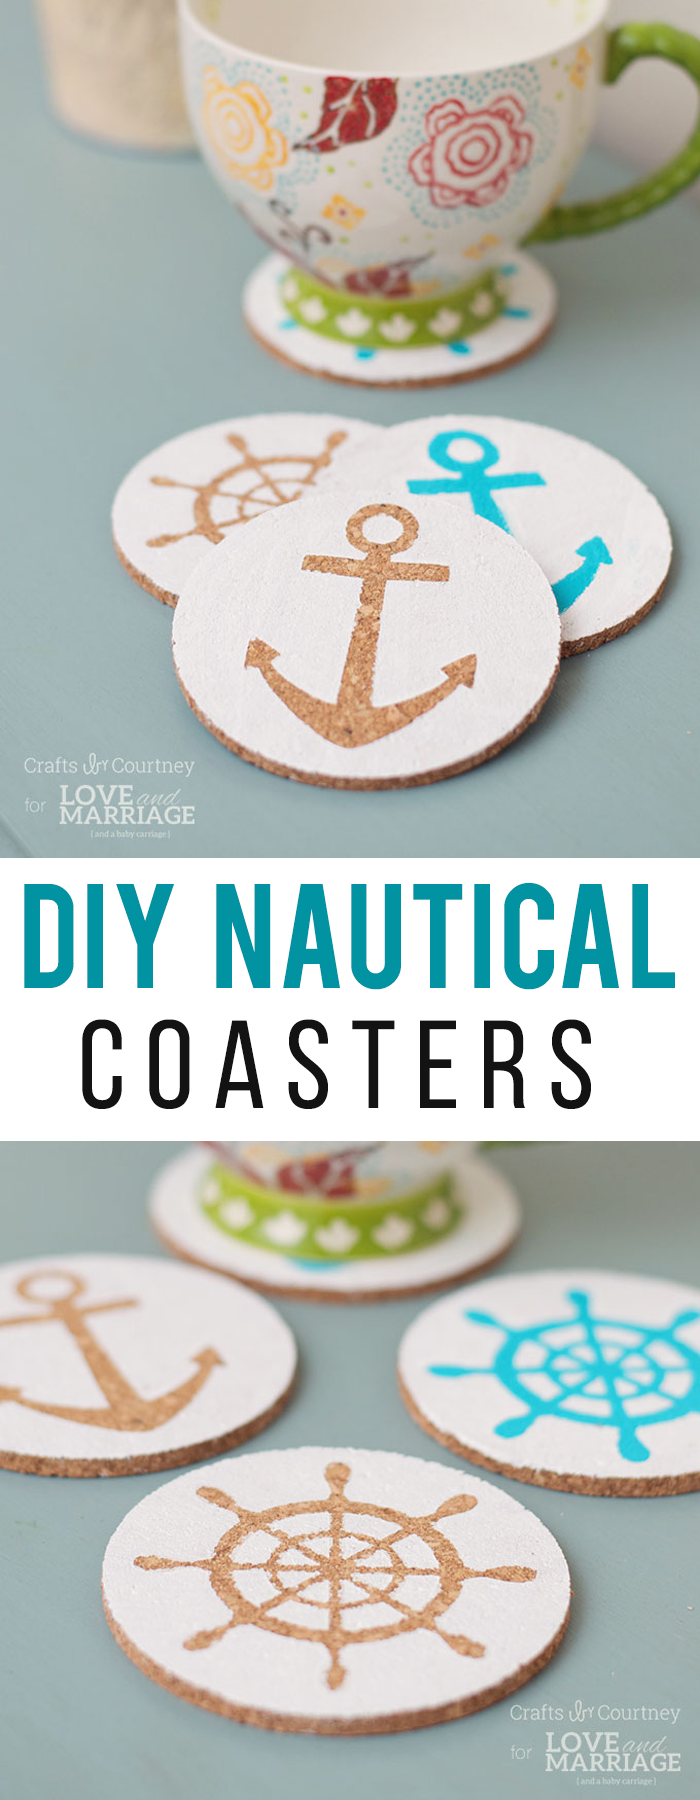 Easy Nautical DIY Coasters